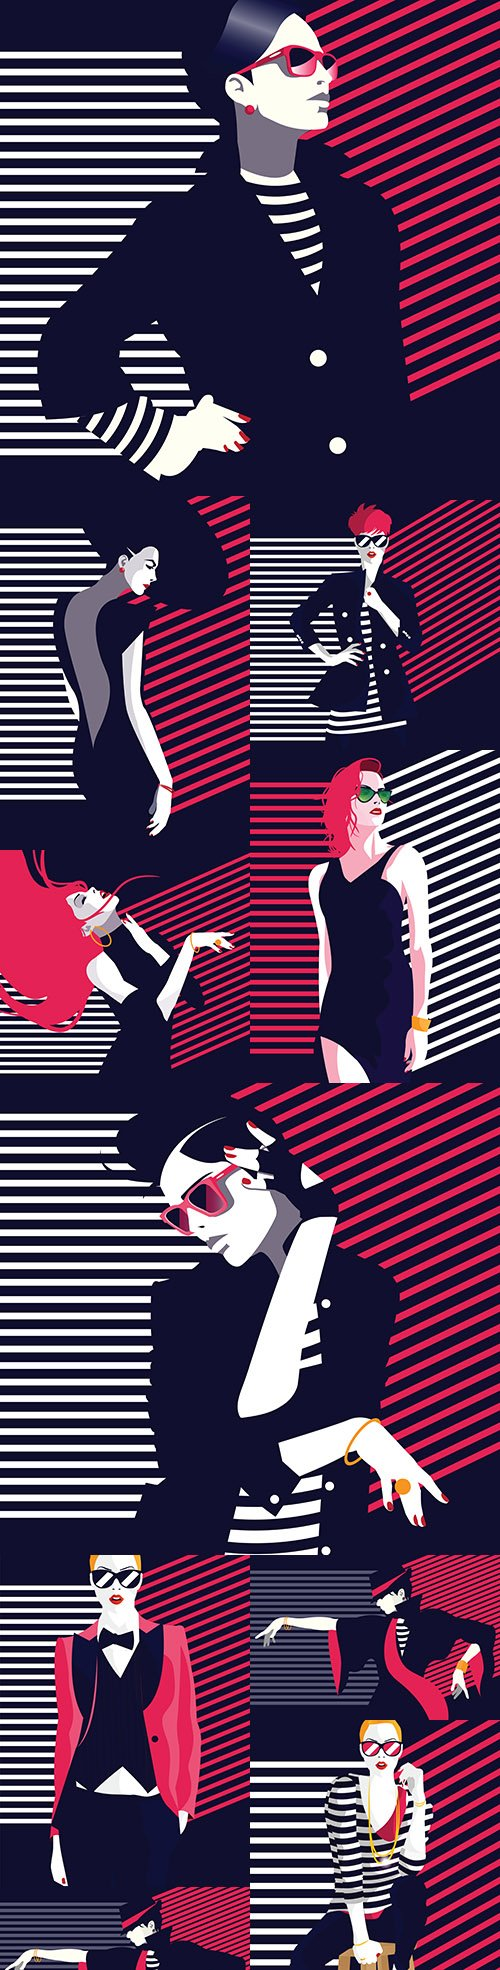 Fashion woman in pop art style illustration